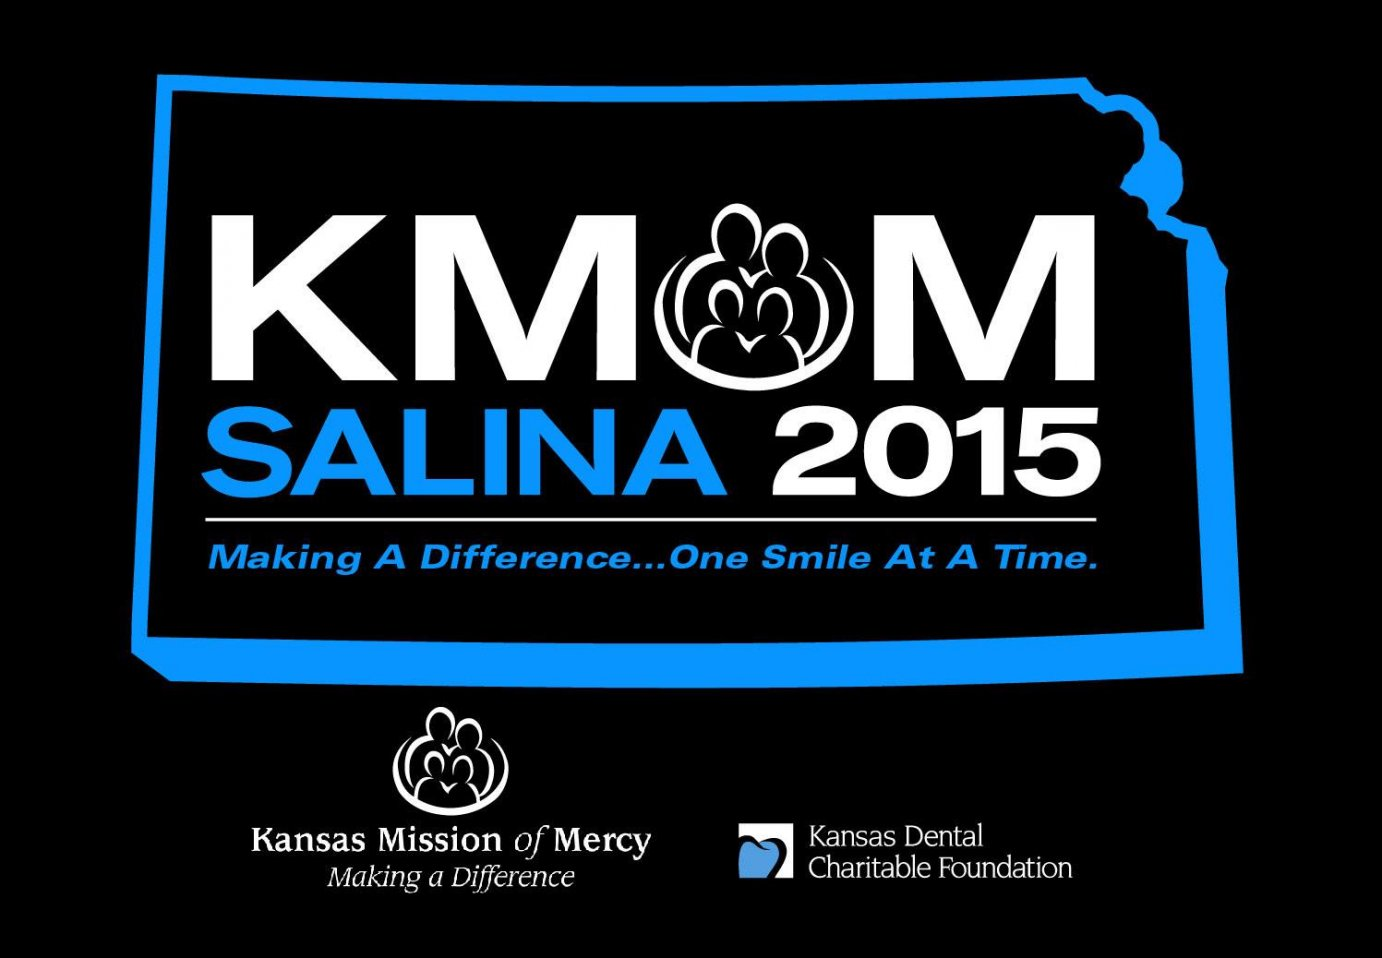 The Kansas Mission of Mercy provides free dental care to those in need, once a year.